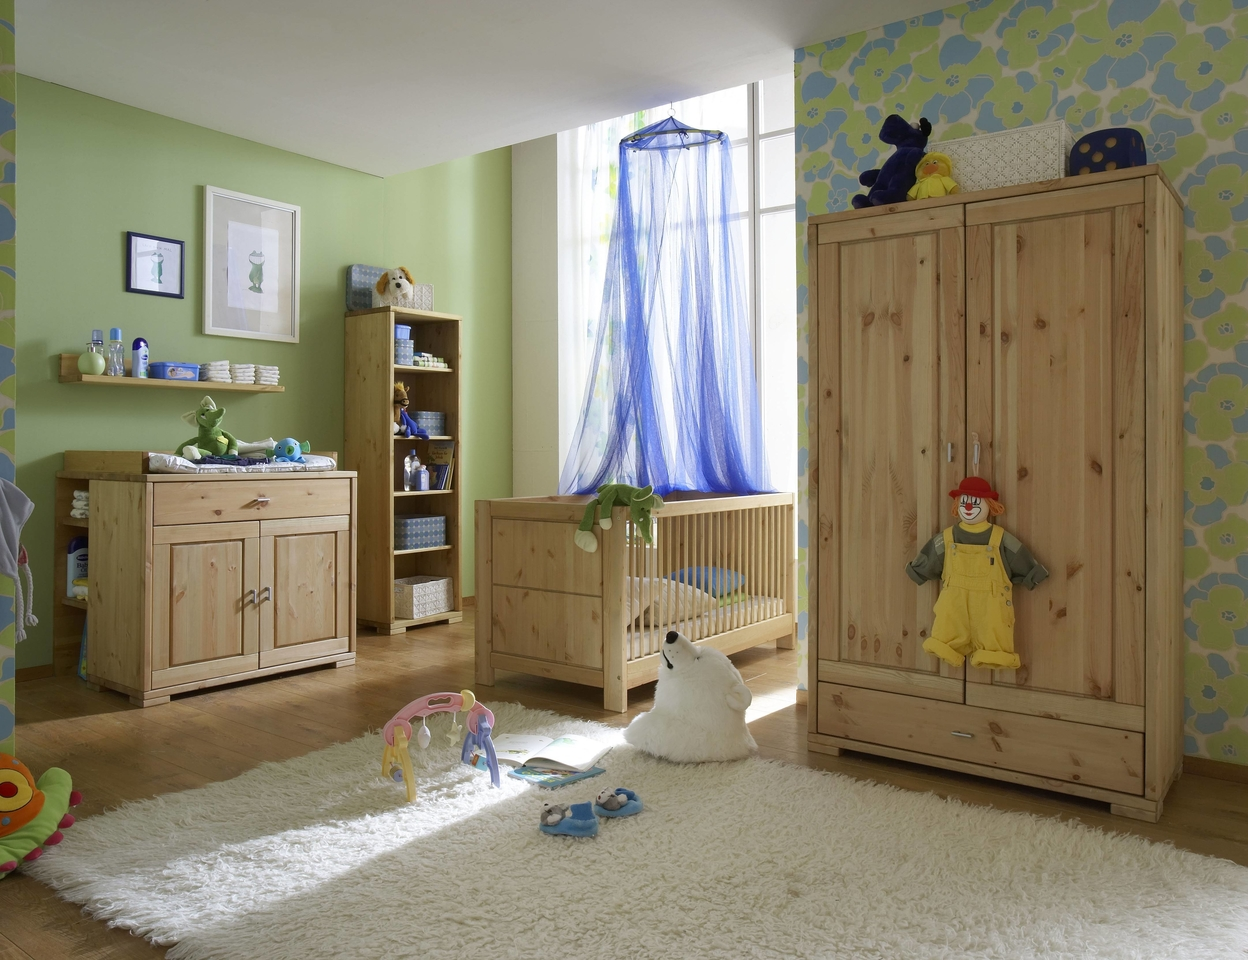 kinderzimmer guldborg kiefer massiv gelaugt ge lt von. Black Bedroom Furniture Sets. Home Design Ideas